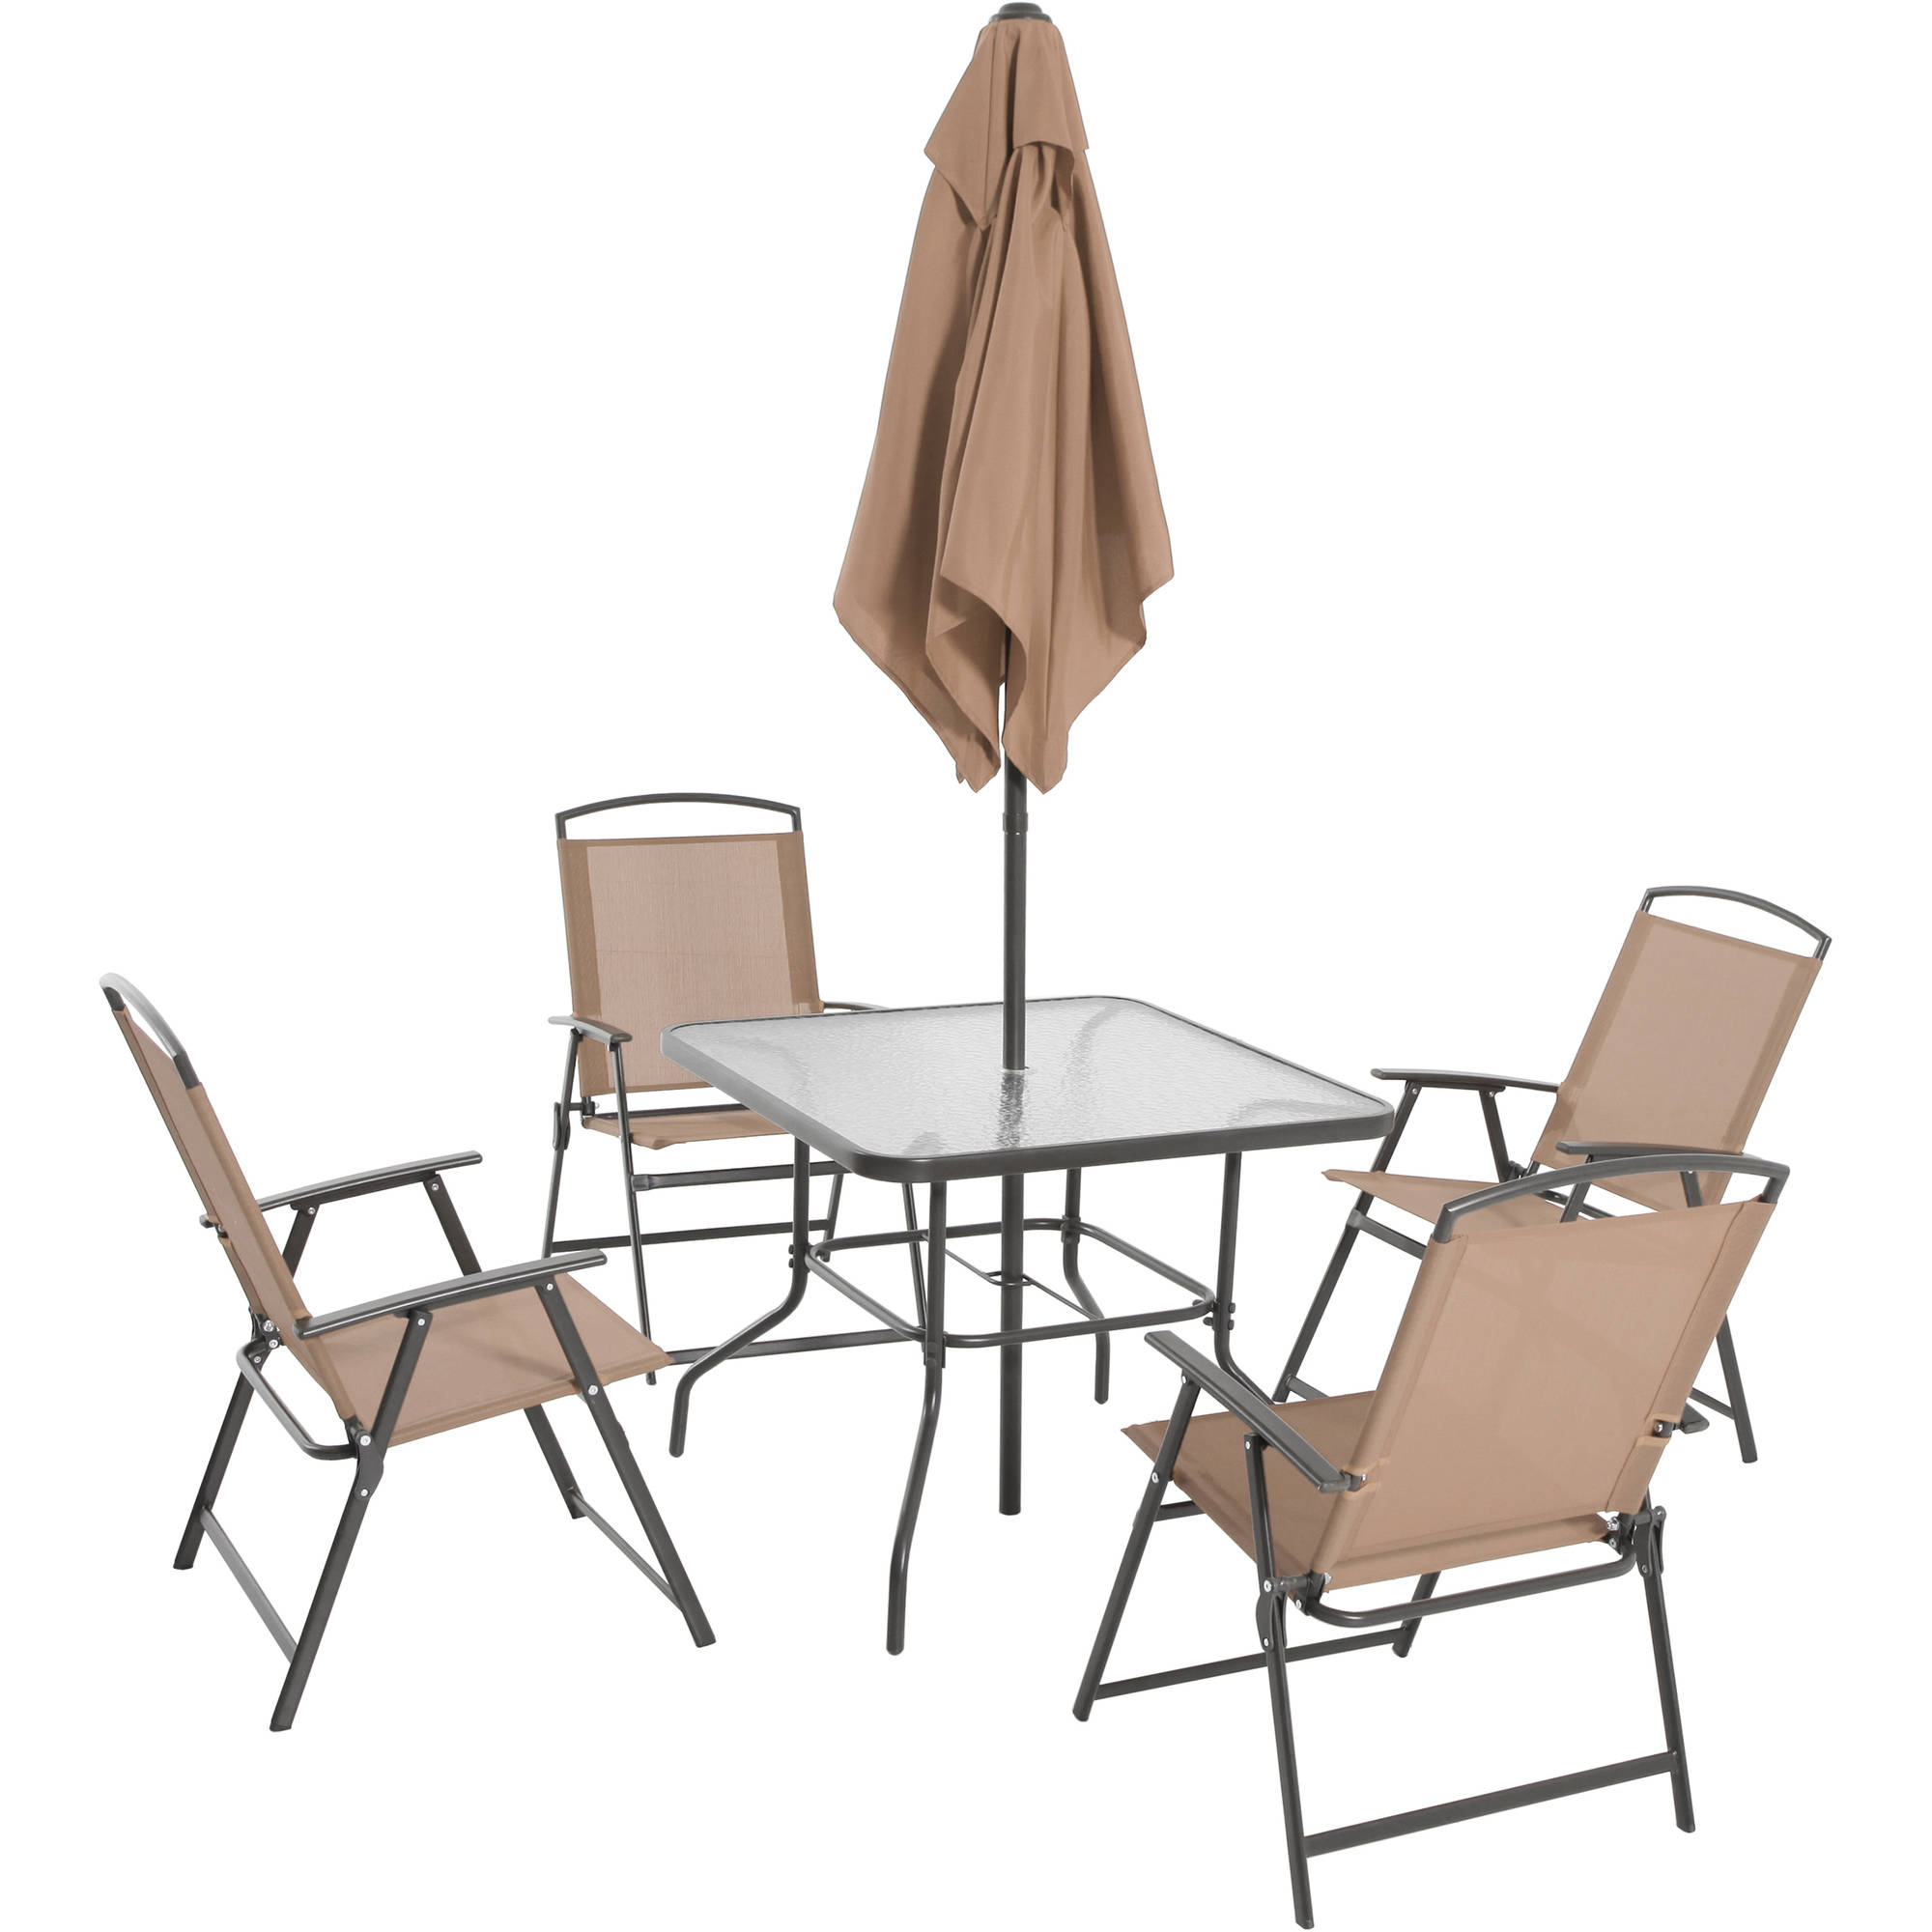 Mainstays Albany Lane 6 Piece Folding Dining Set, Multiple Colors    Walmart.com